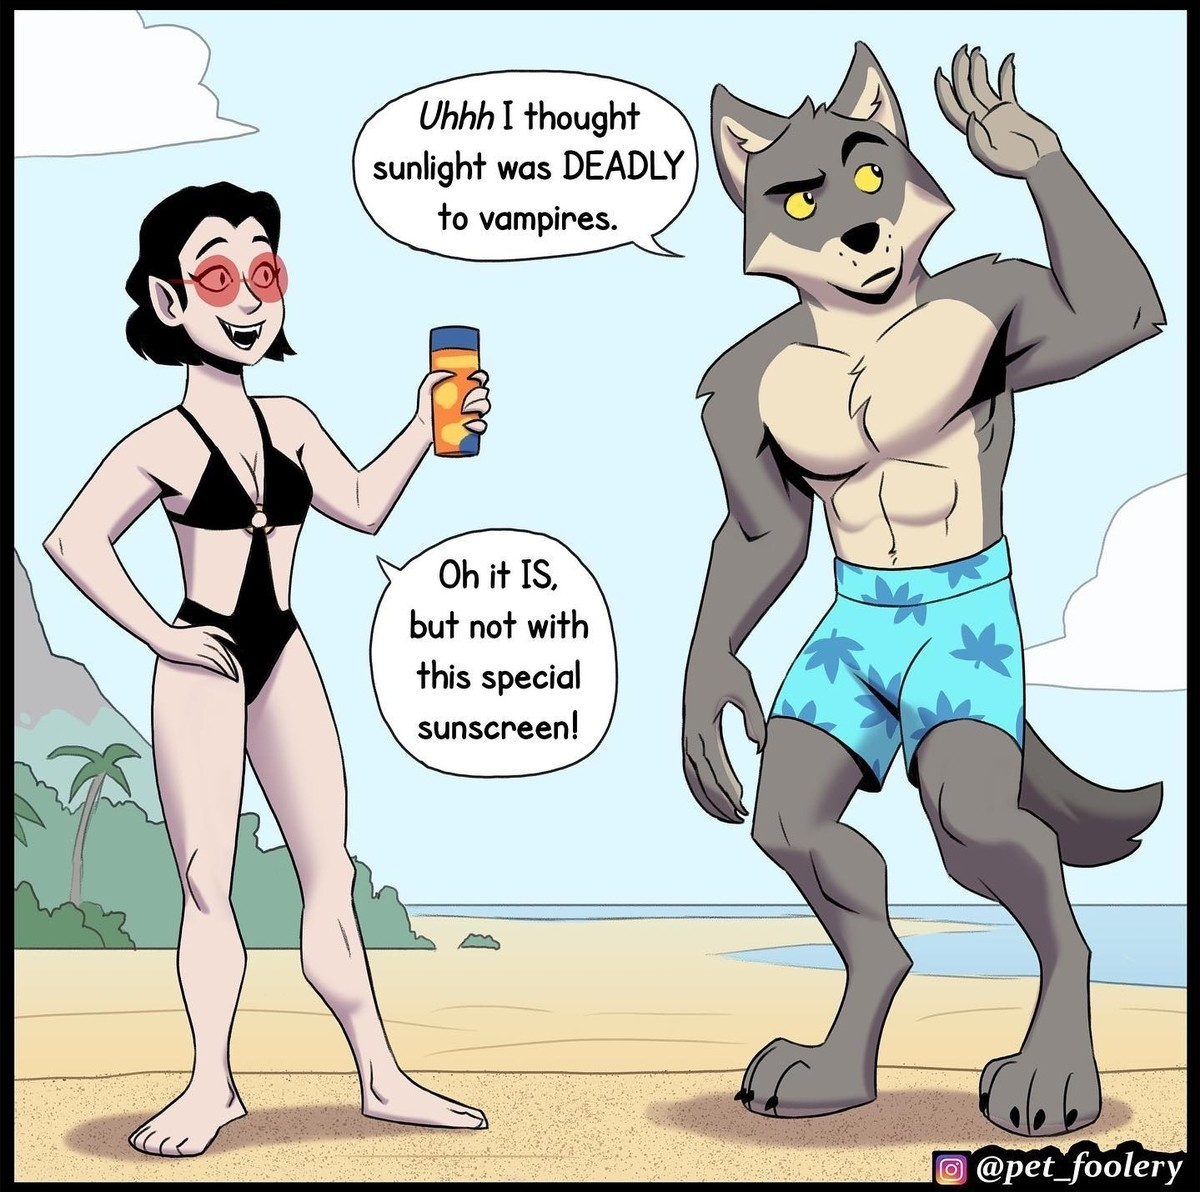 Procreation of the Wicked. .. It is overwhelmingly obvious that the author is a furry